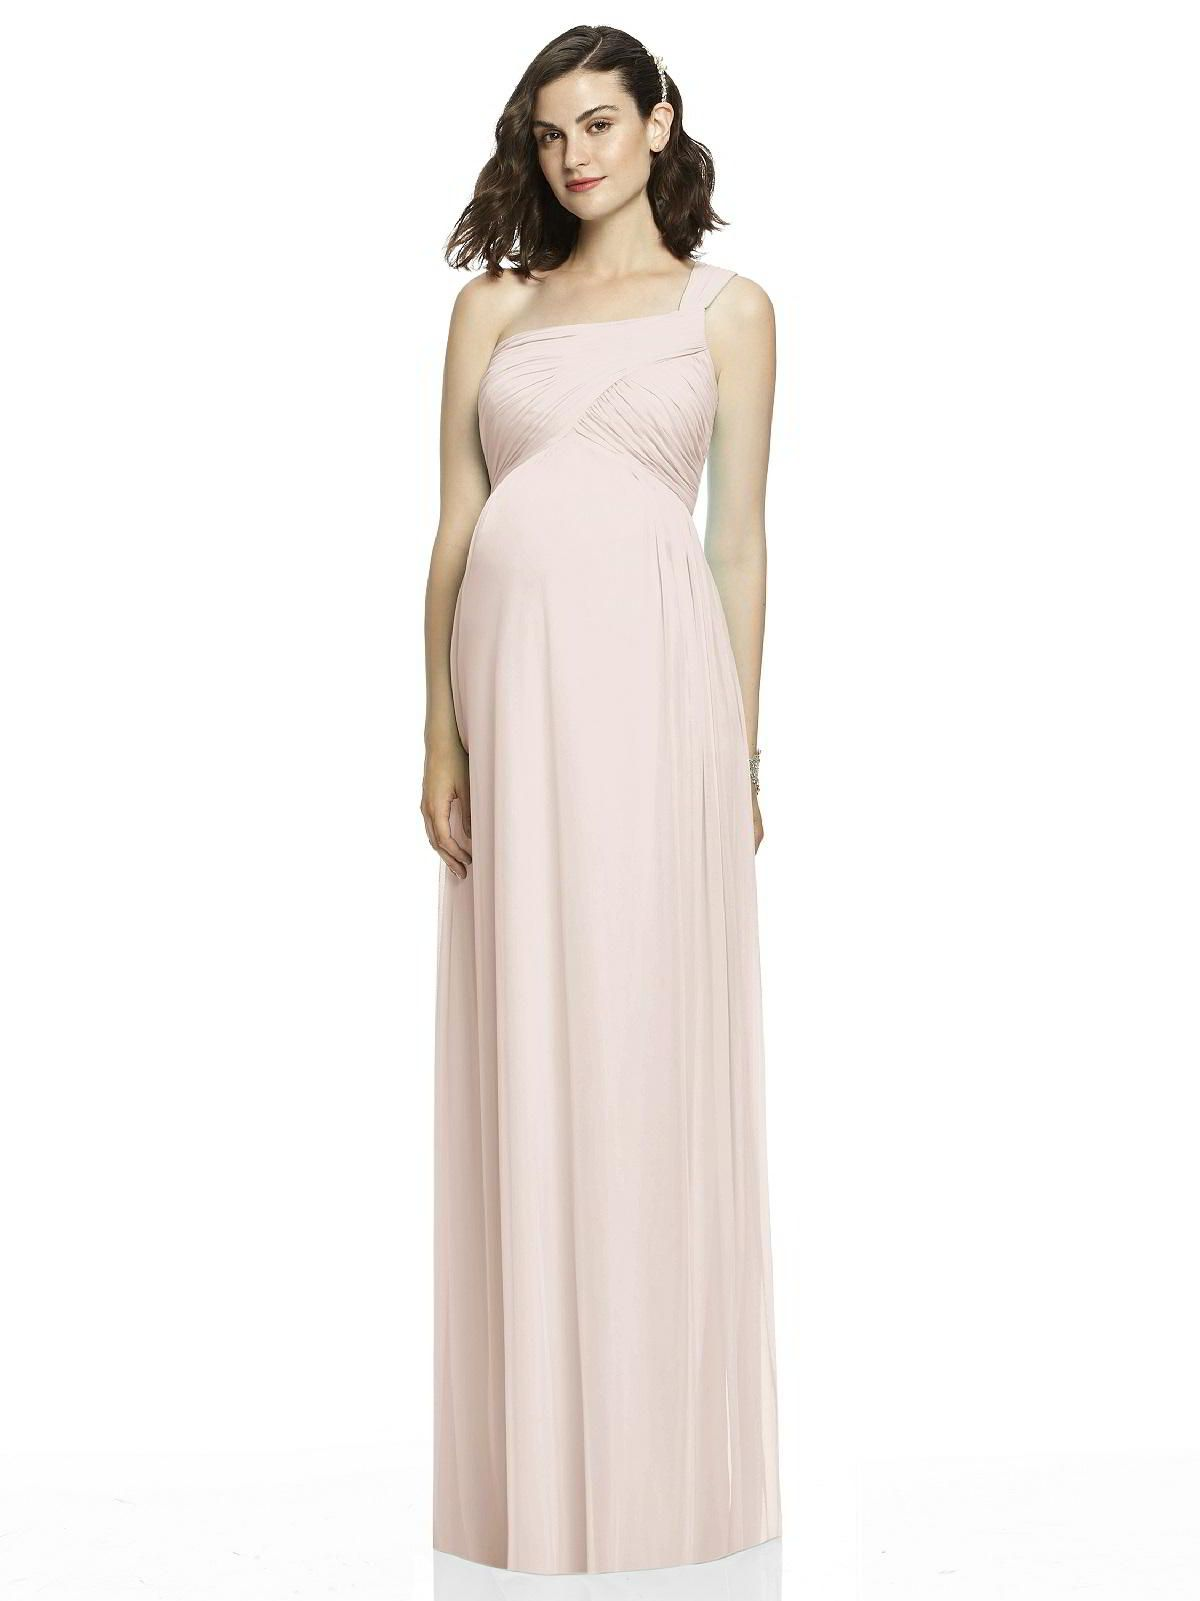 Alfred sung maternity dress style m427 httpdessy alfred sung maternity dress style m427 httpdessy ombrellifo Images